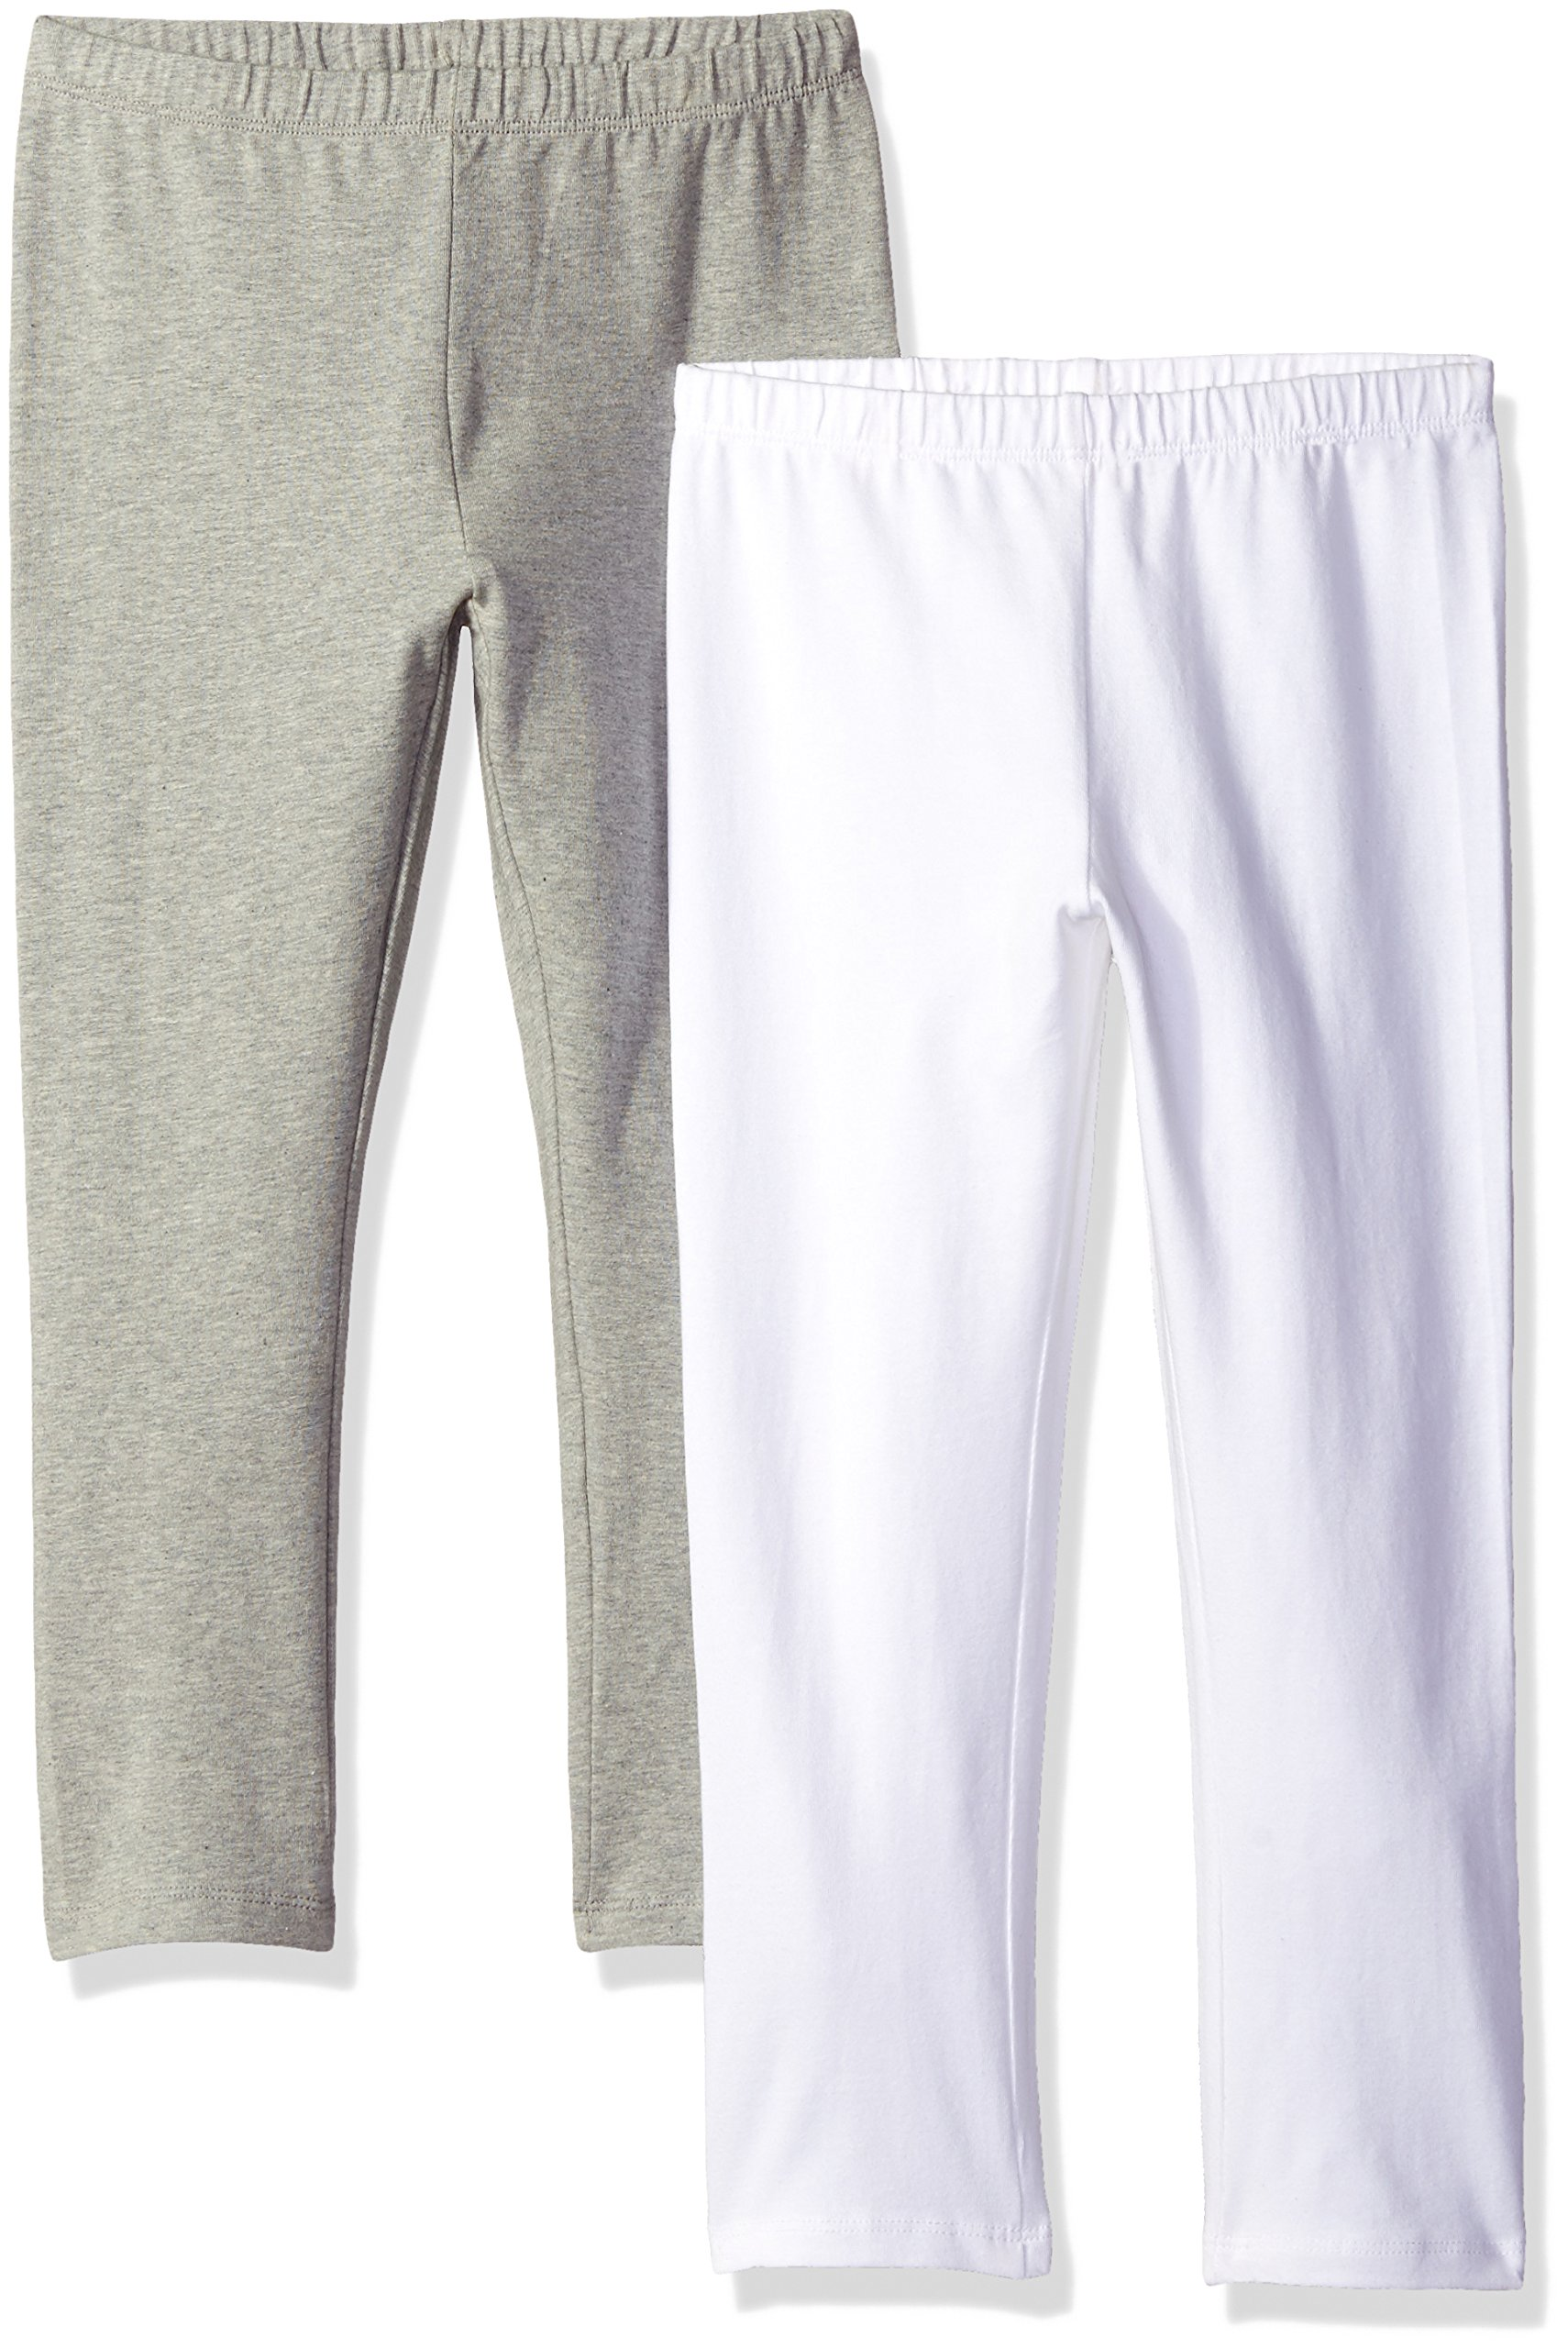 The Children's Place Girls' 2 Pack Basic Leggings, Heather Grey 47827 (Pack of 2), X-Small/4